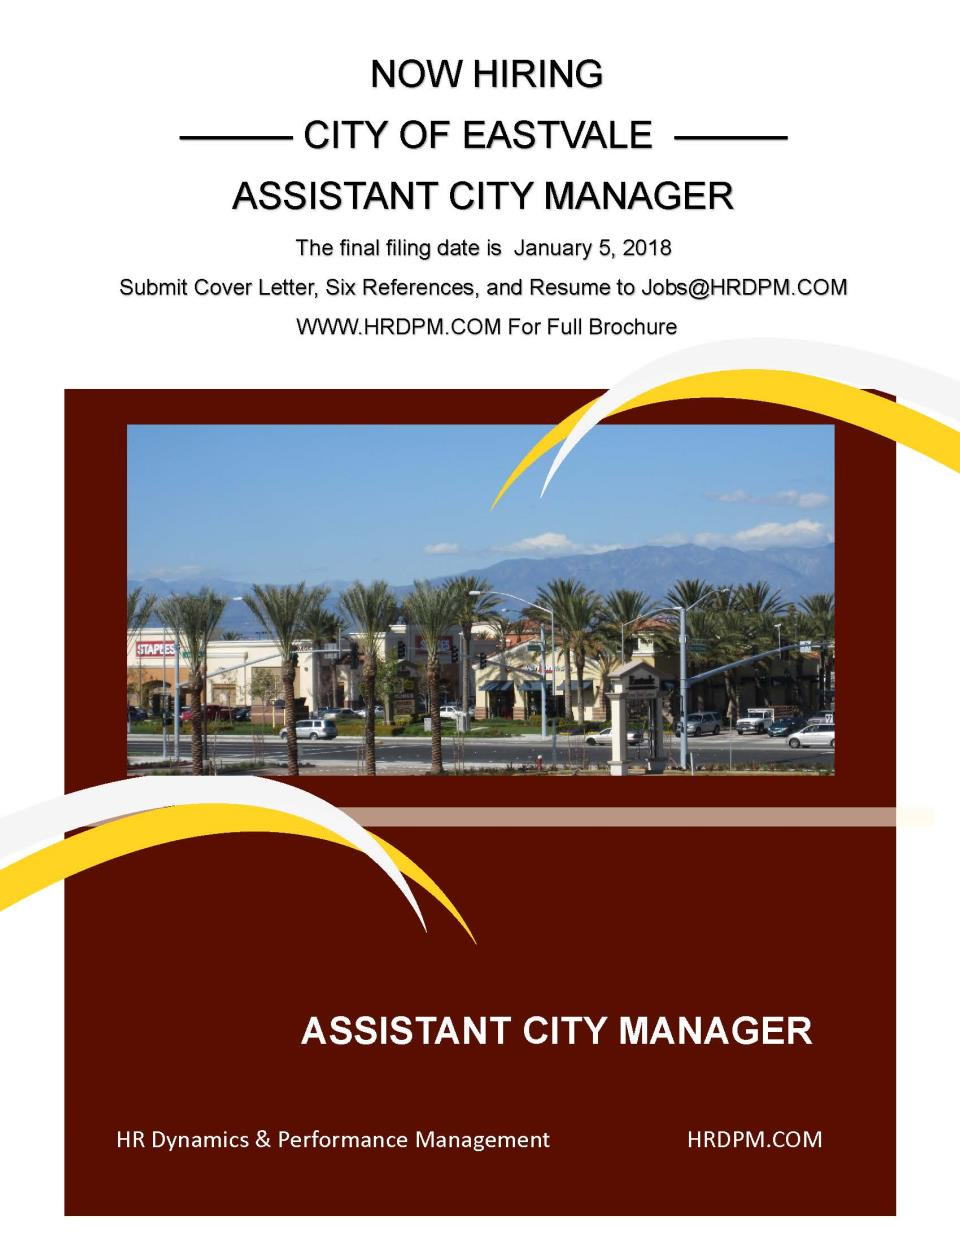 Assistant City Manager Recruitment